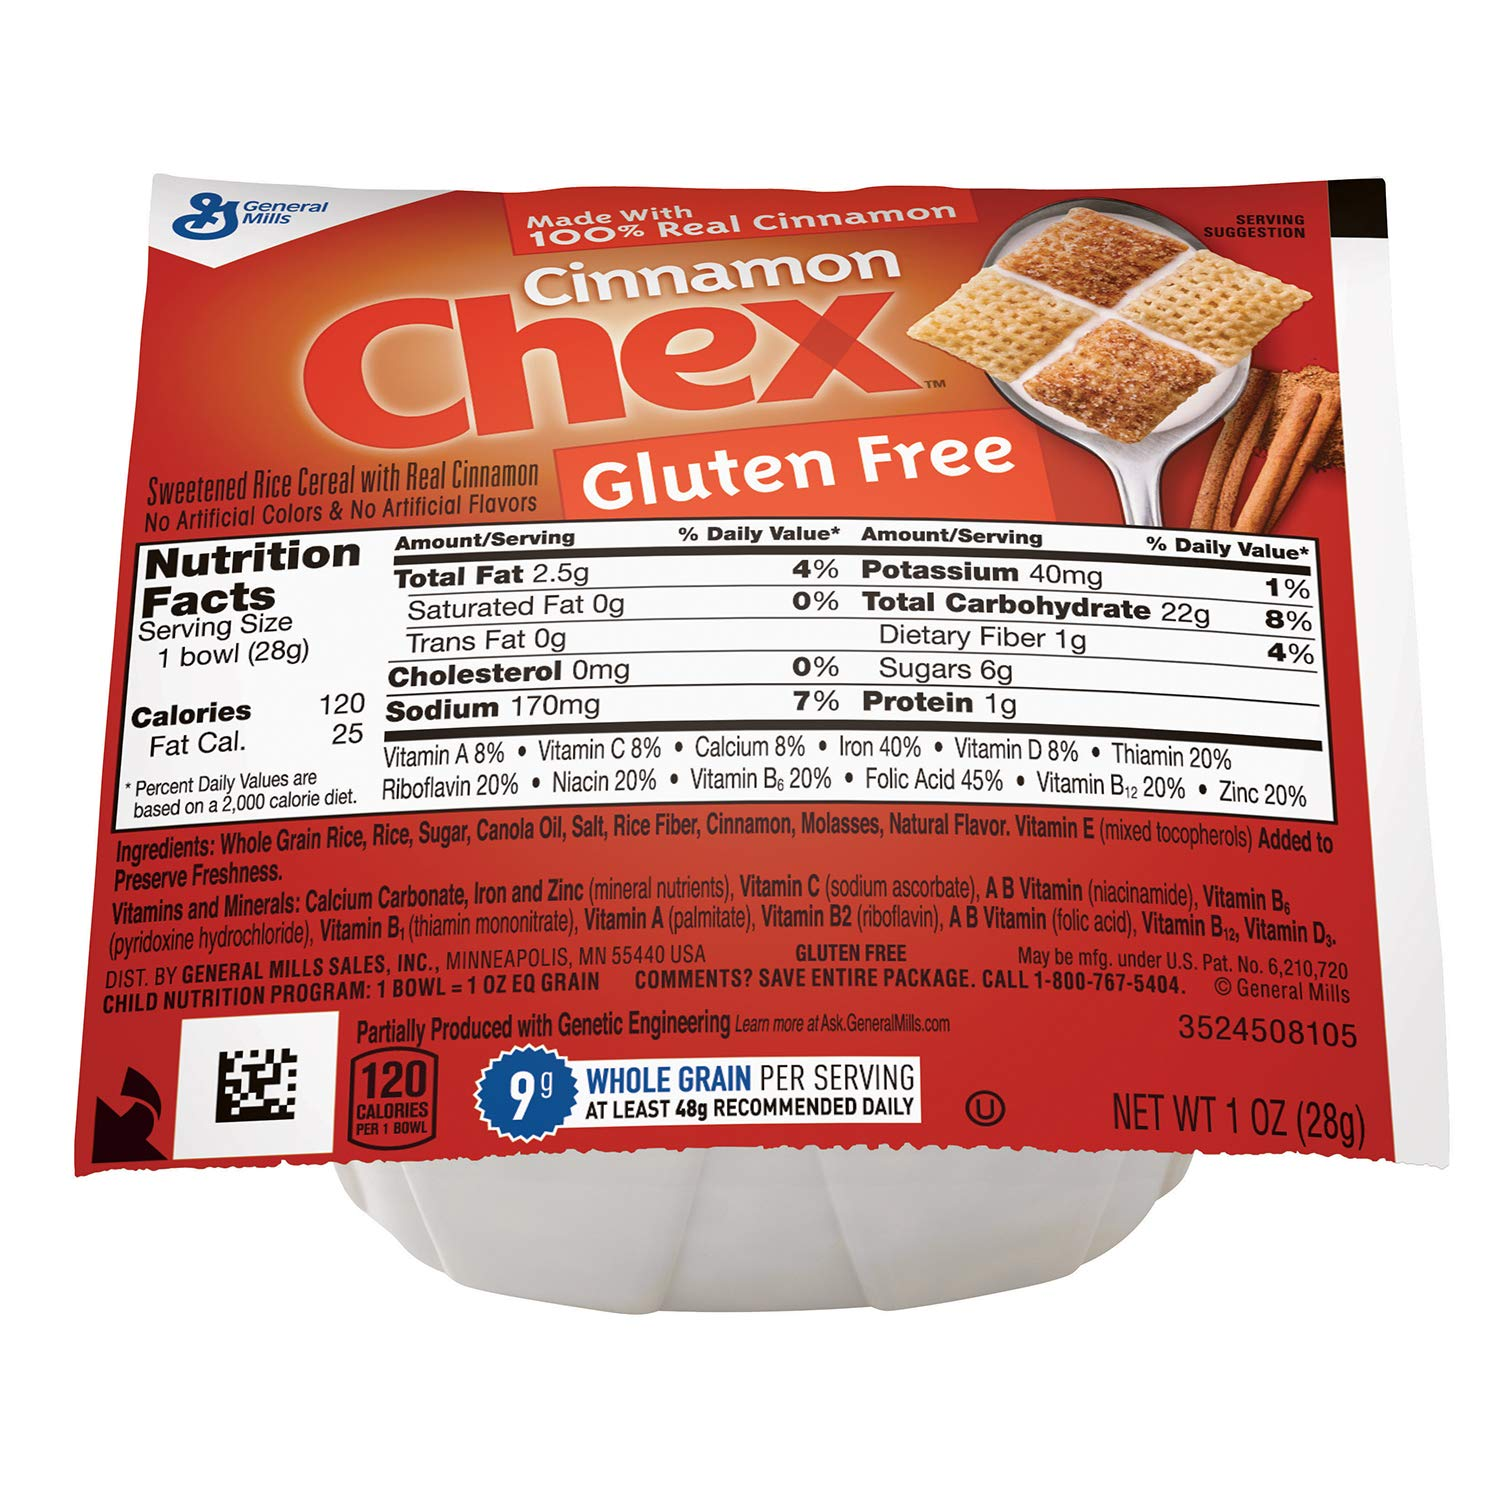 Cinnamon Chex Gluten Free Bowlpak Cereal, 96Count by General Mills Cereal